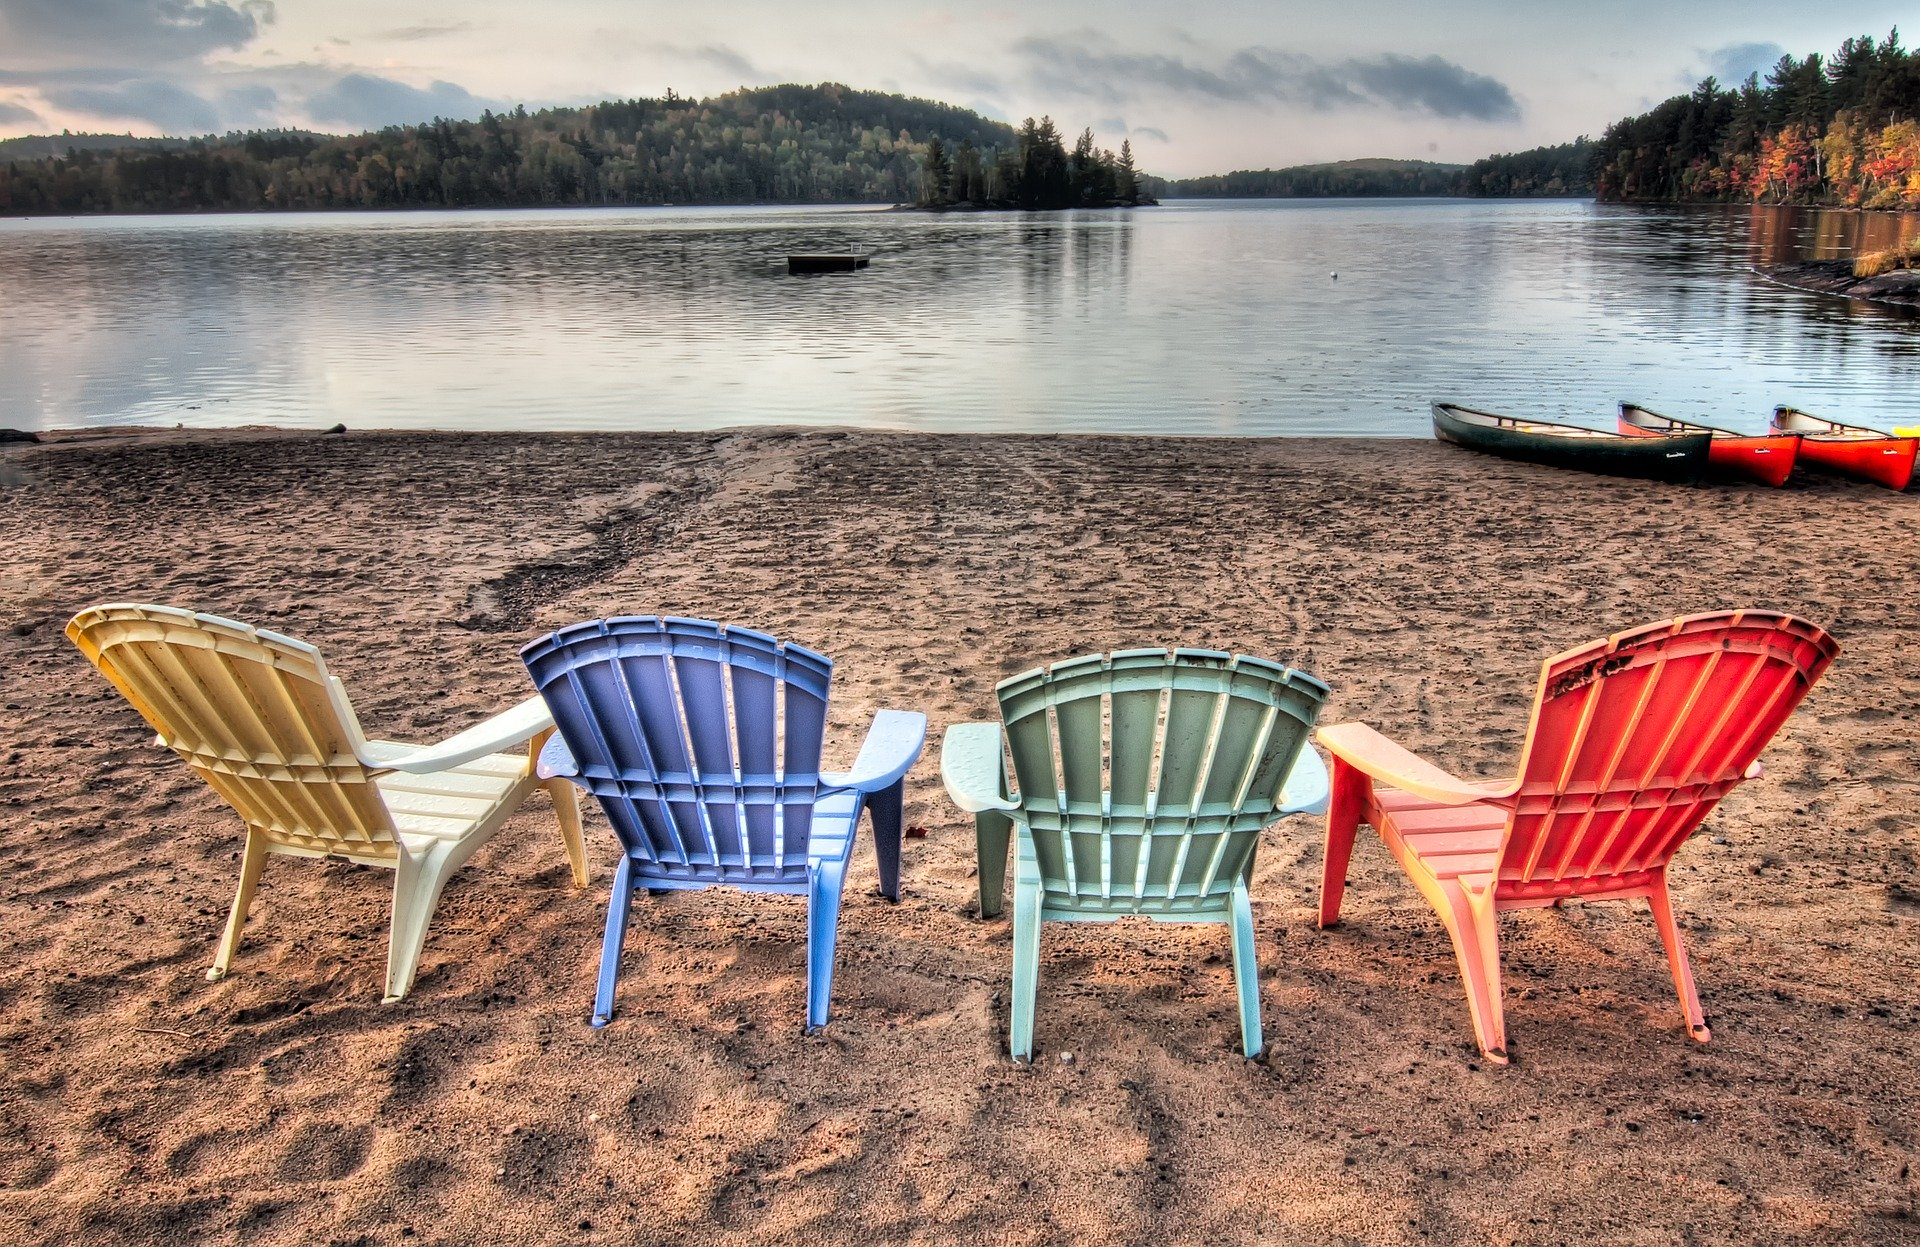 Lakeshore seating on Adirondack chairs.